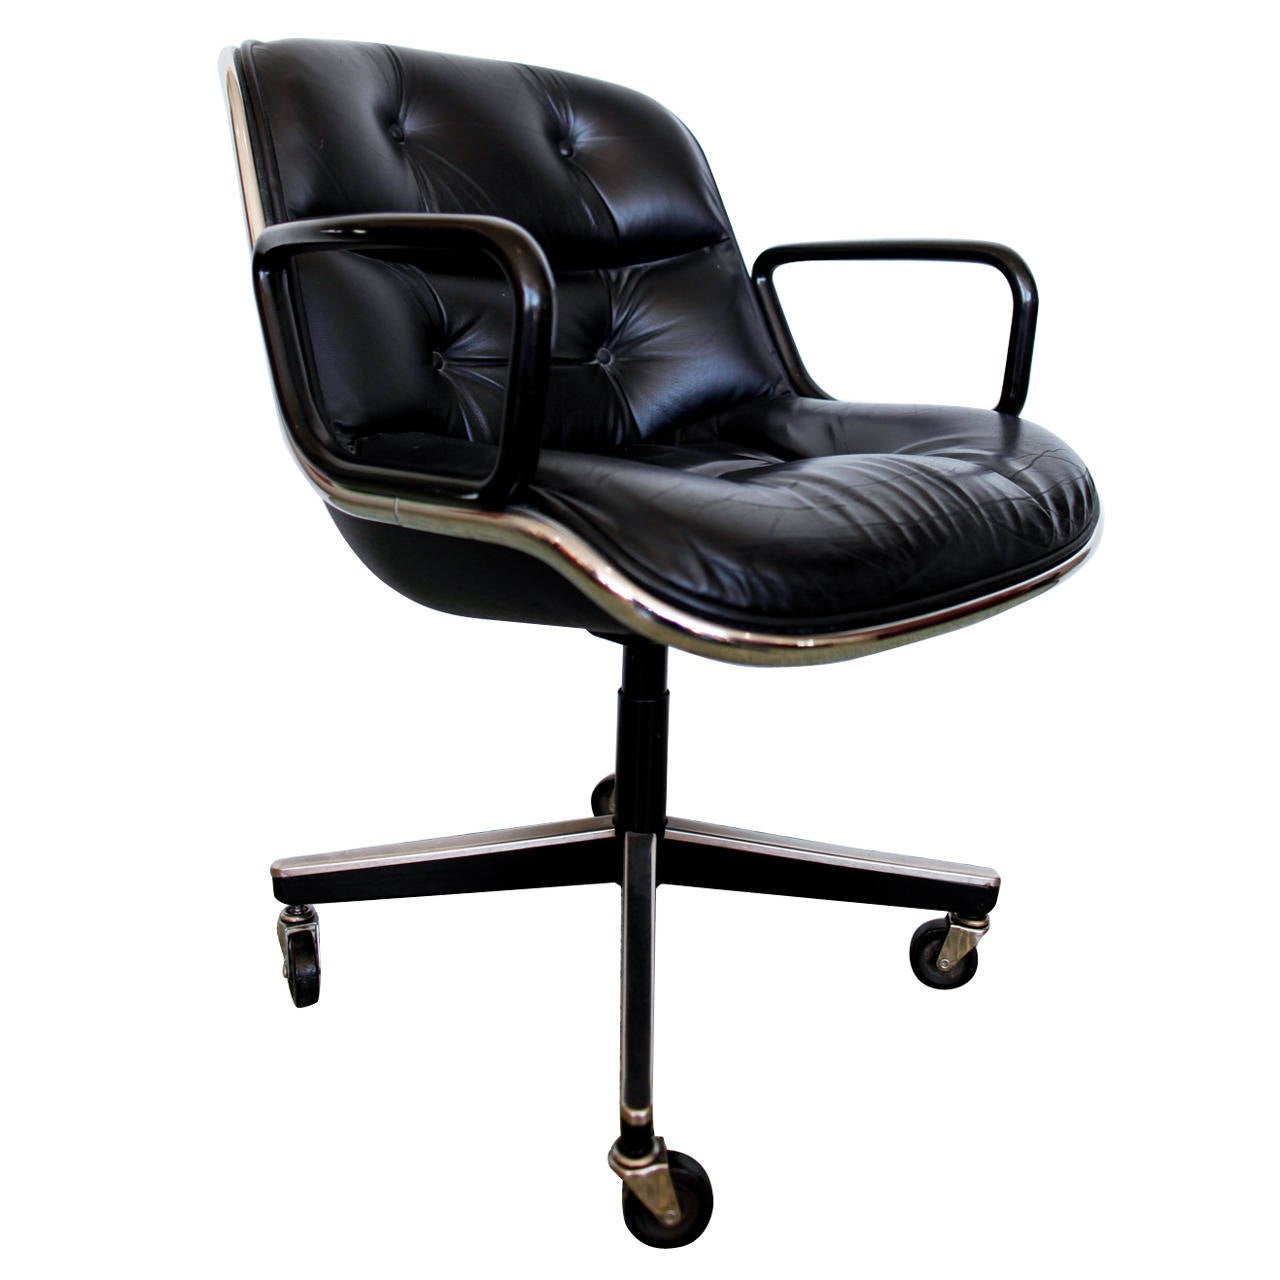 black executive chair by charles pollock for knoll at stdibs - black executive chair by charles pollock for knoll